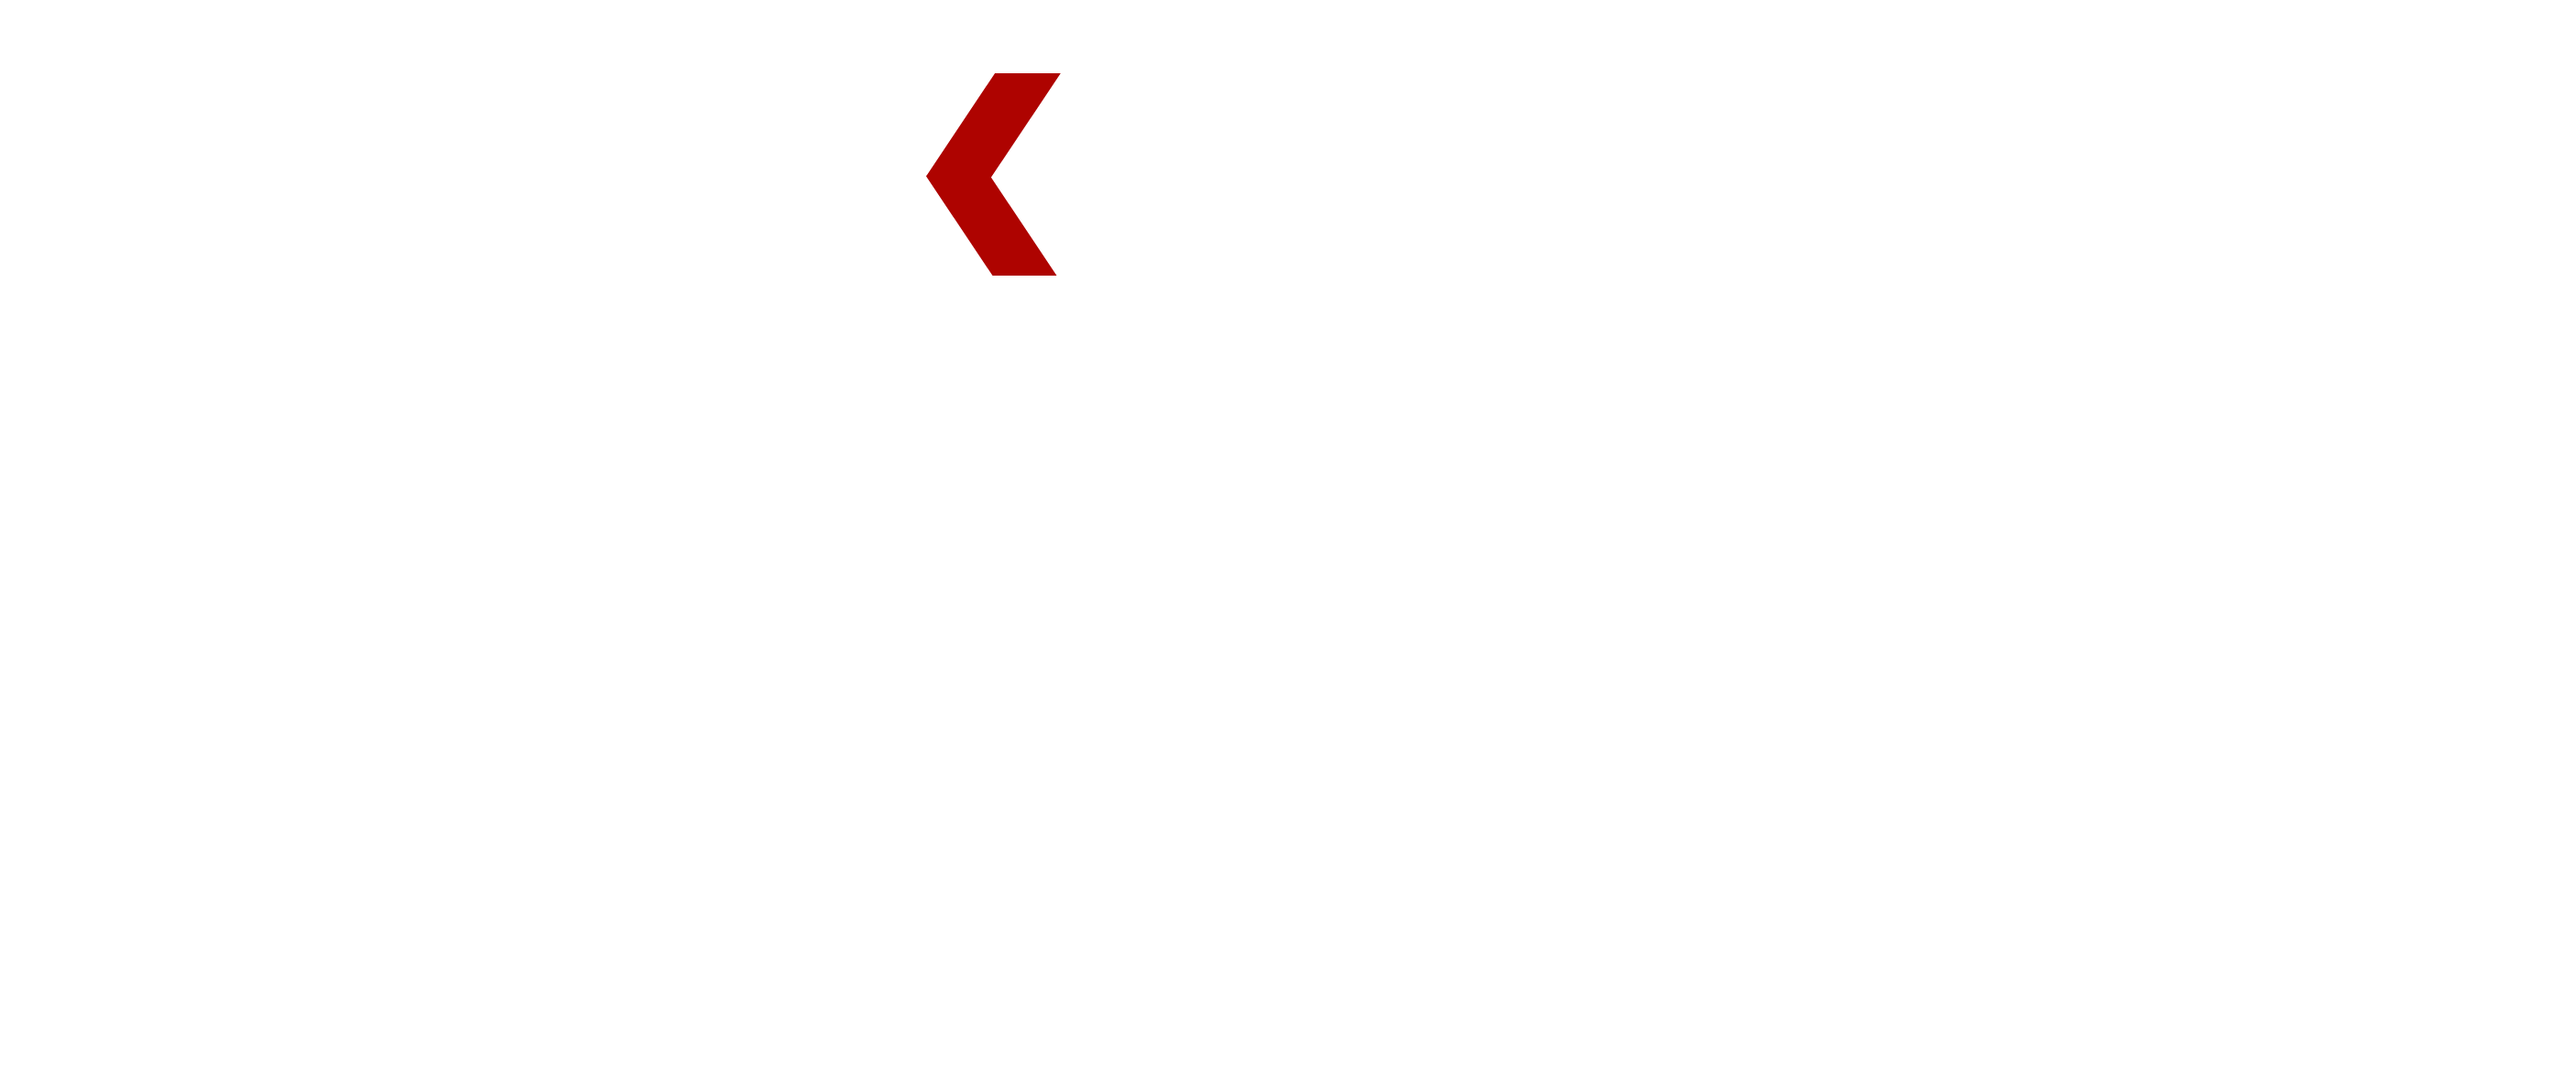 Marketing takes a day to learn...and decades to master.